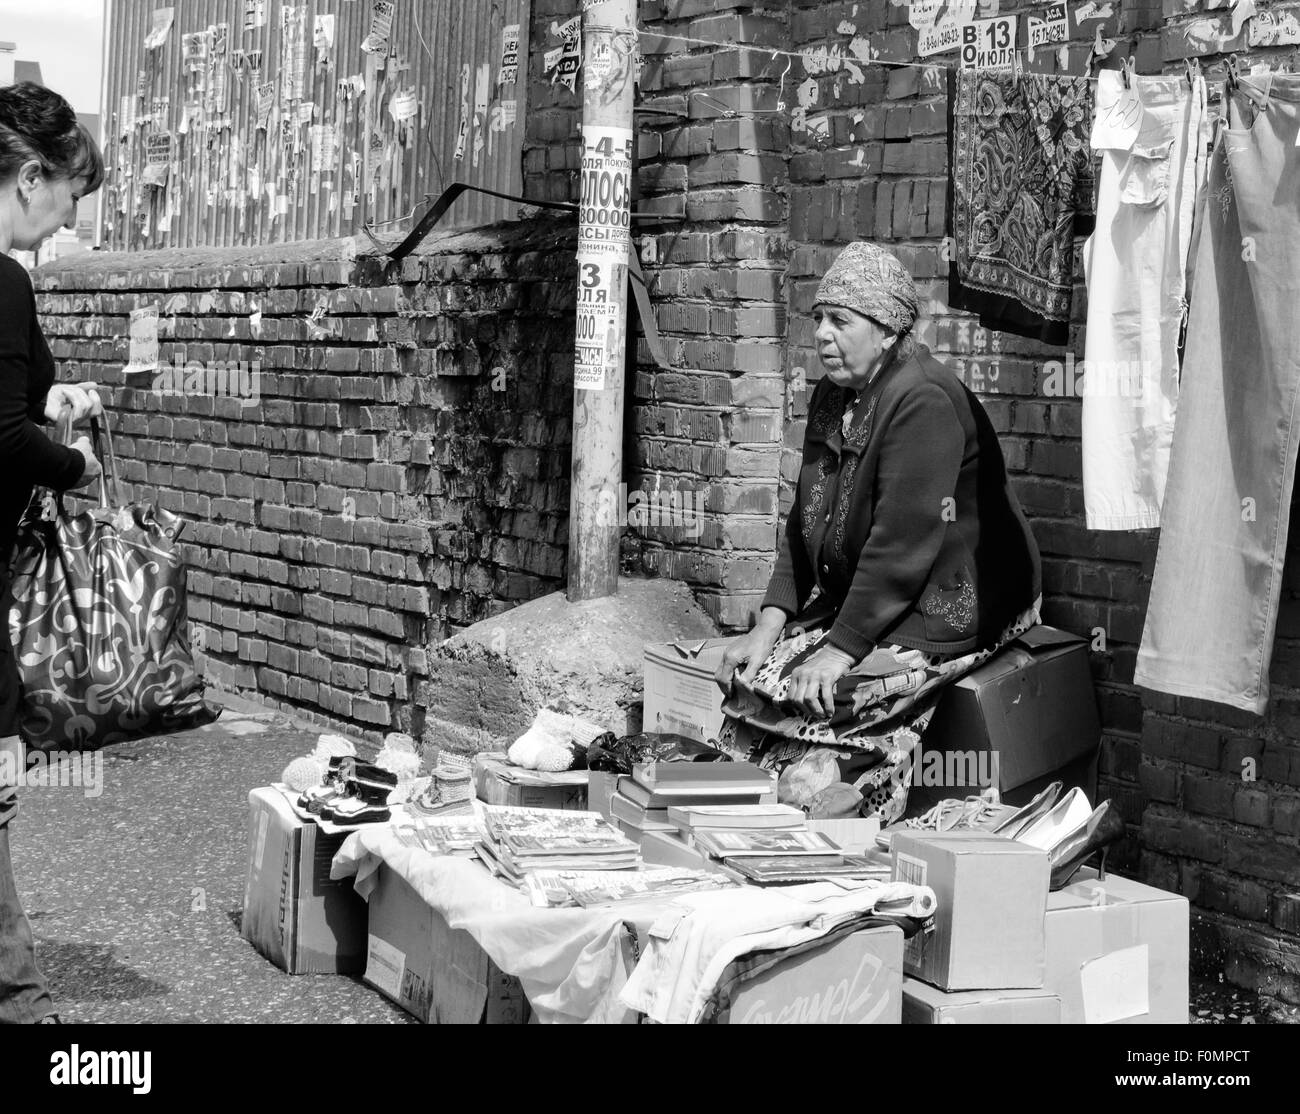 Selling old books at a market stall, an elderly pensioner or babushka converses with a potential consumer - Stock Image